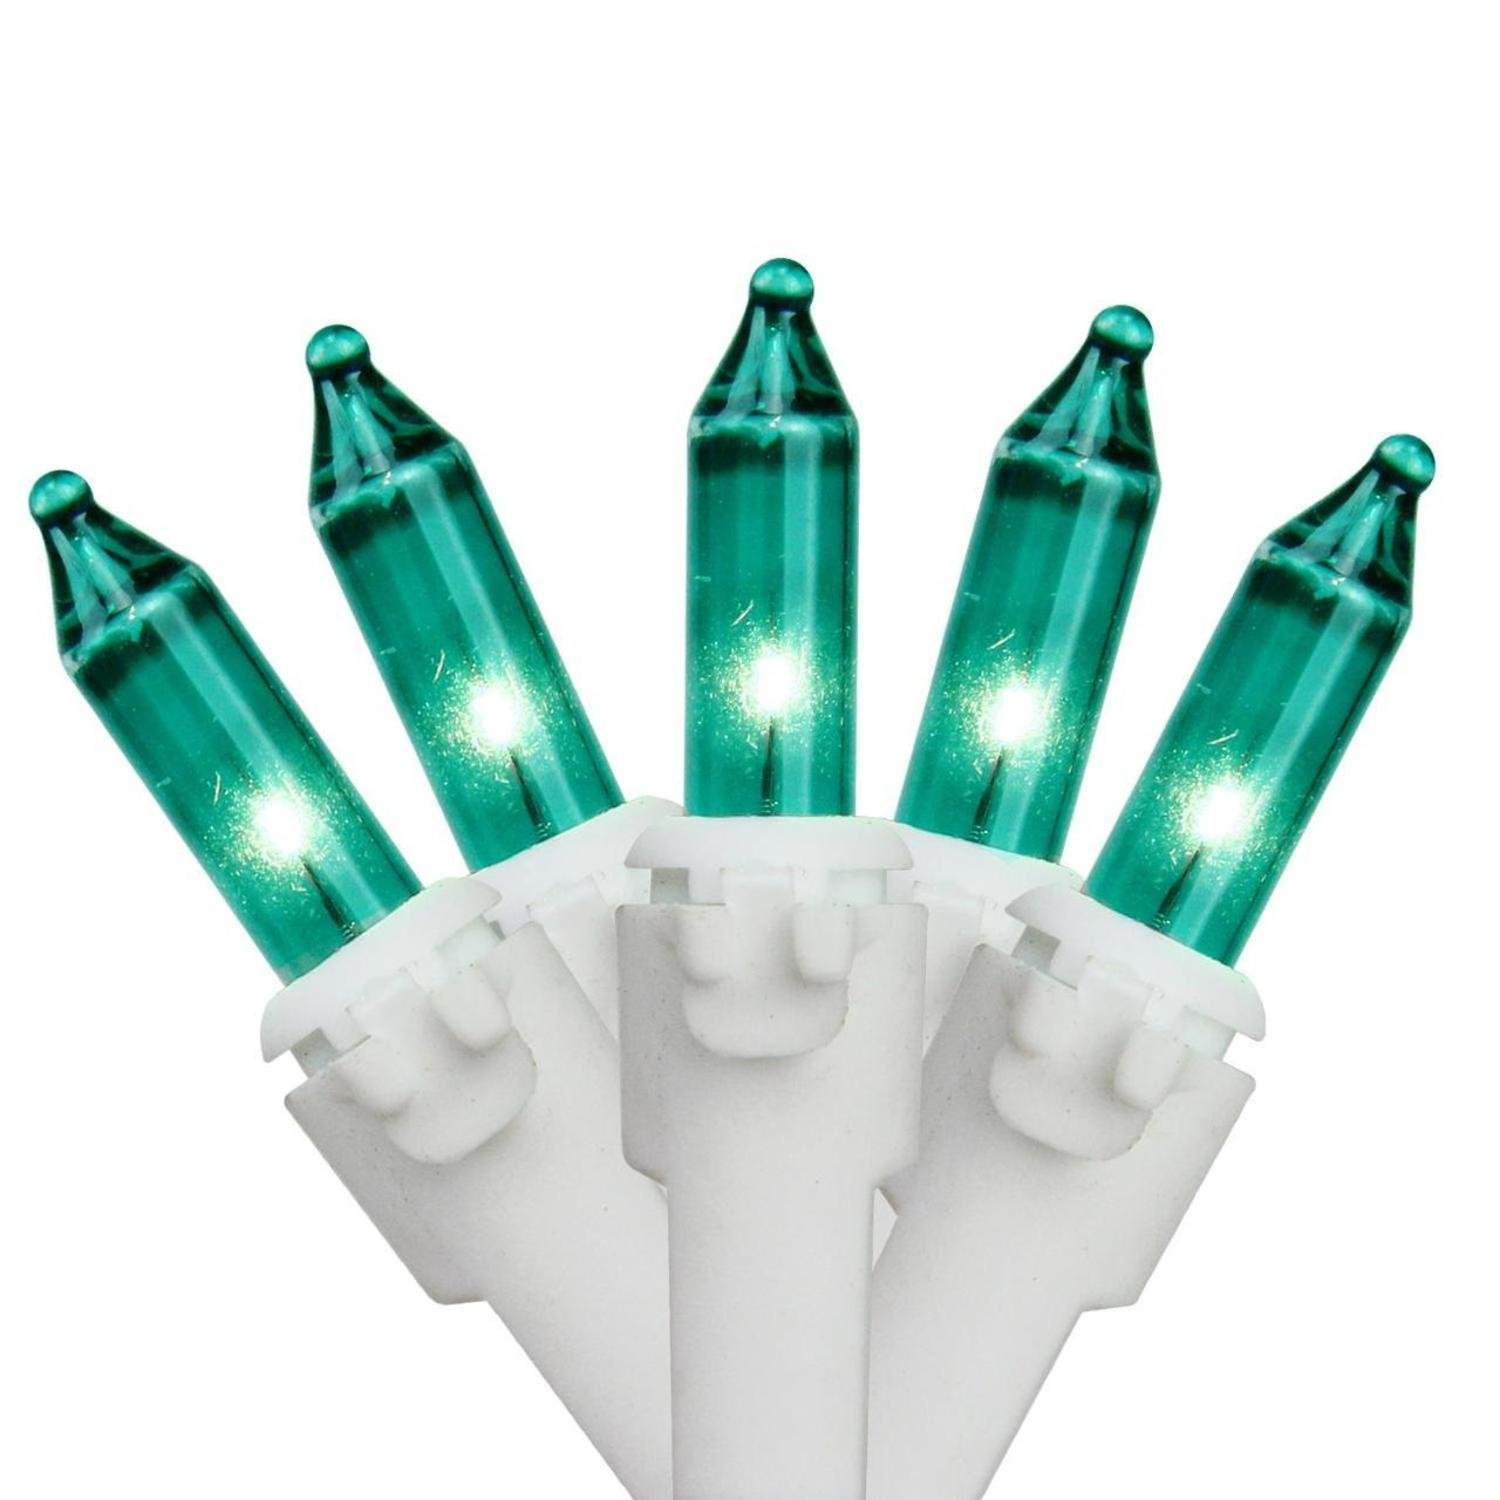 Set of 50 Teal Mini Christmas Lights 6'' Spacing - White Wire